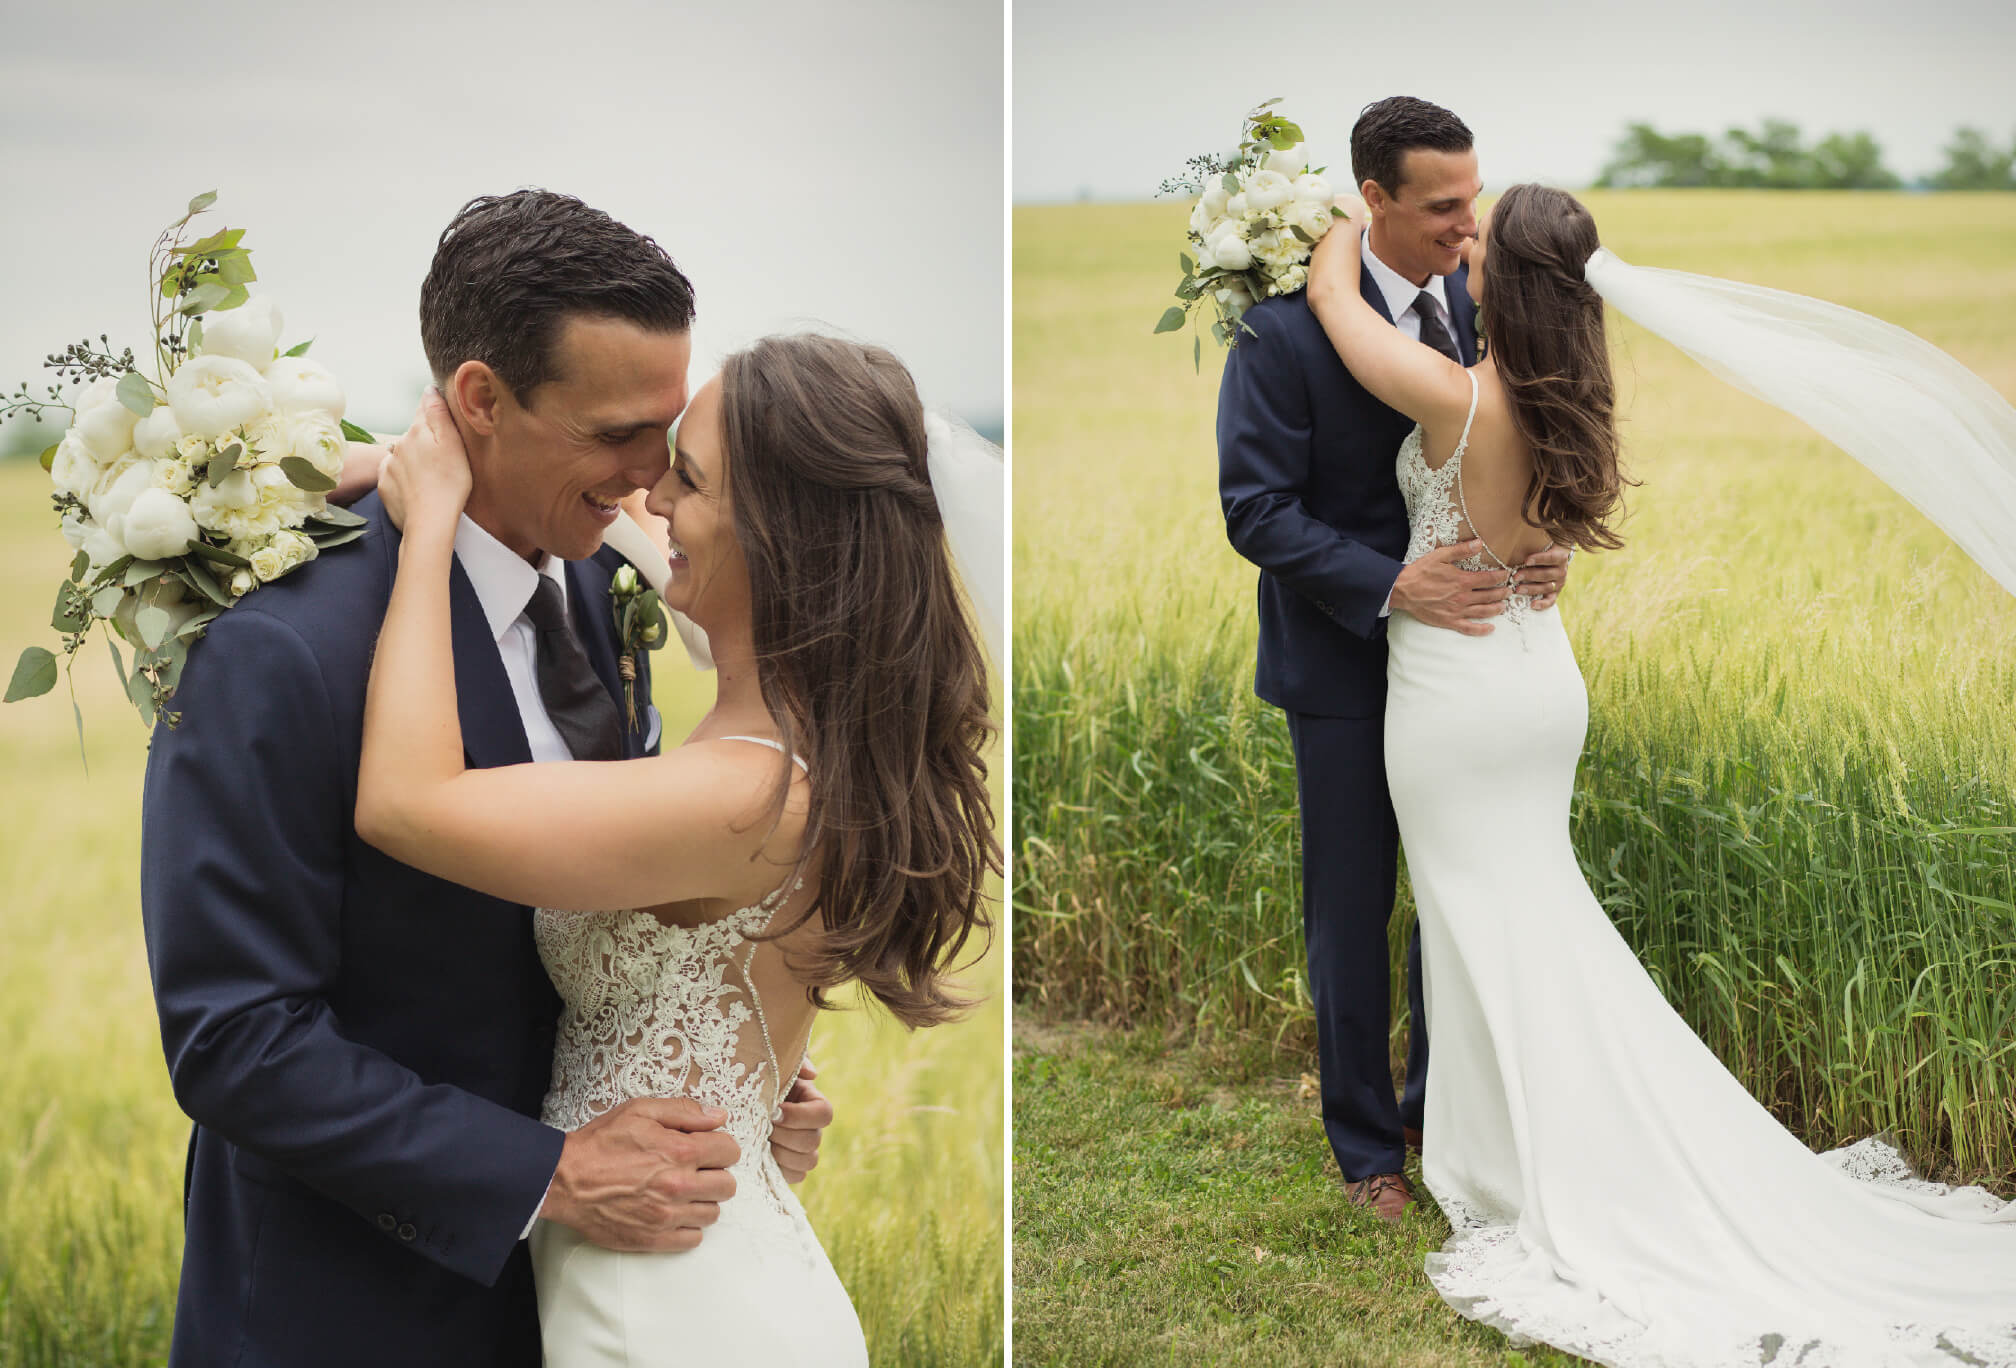 dyments farm bride and groom wedding